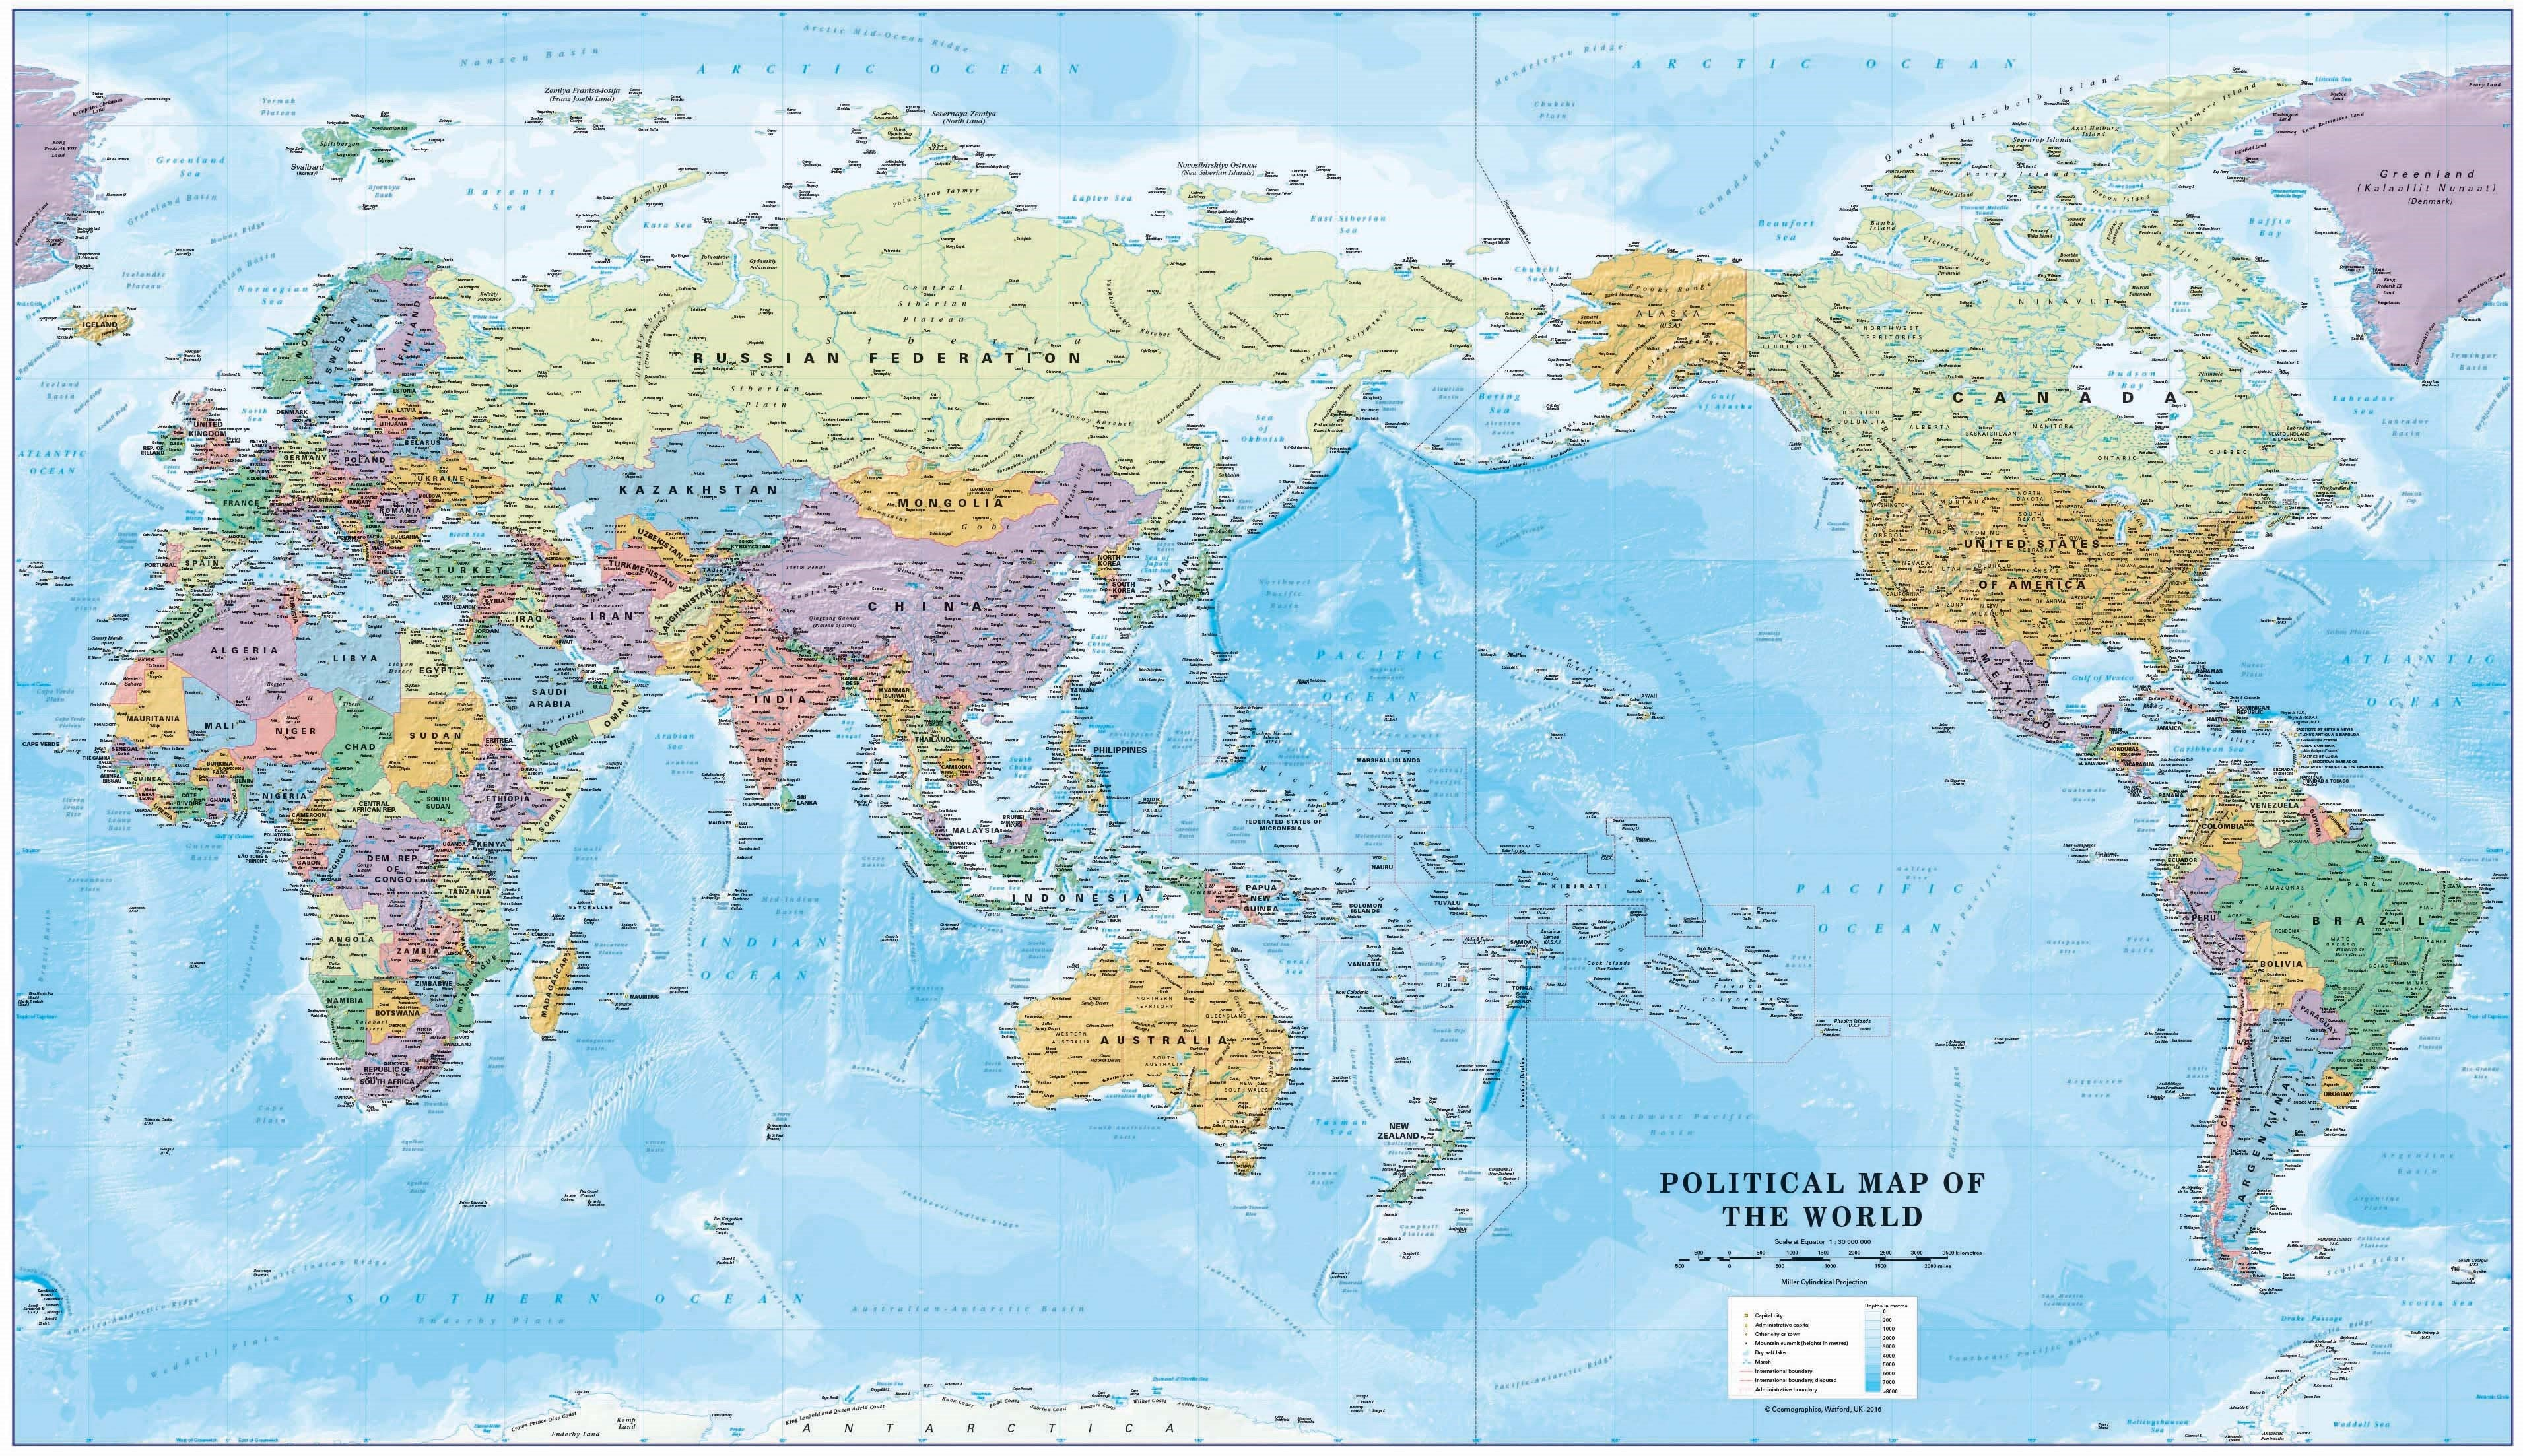 World supermap on canvas 1400 x 840mm pacific centred world political supermap on canvas 1355x 790mm pacific with free map dots gumiabroncs Gallery